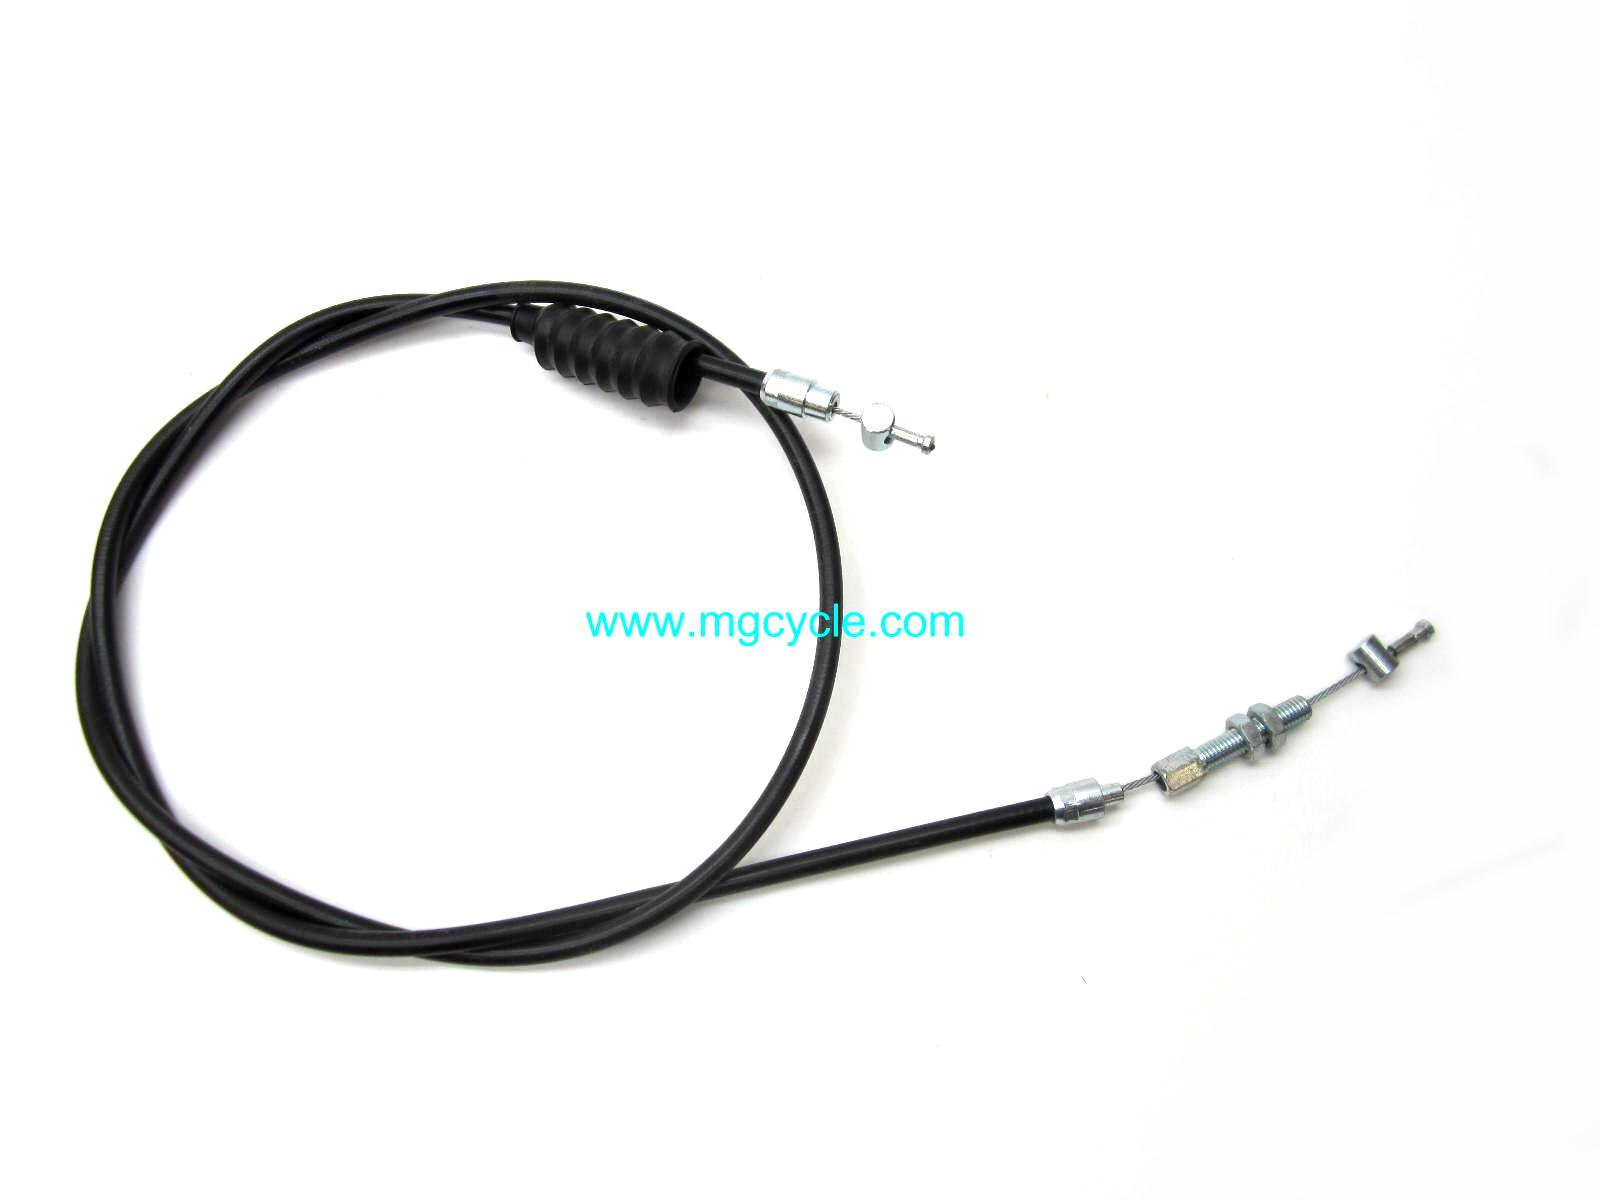 28093011 - $21.96 - Clutch cable, T5 3rd series 1983-88, Mille GT 87 ...